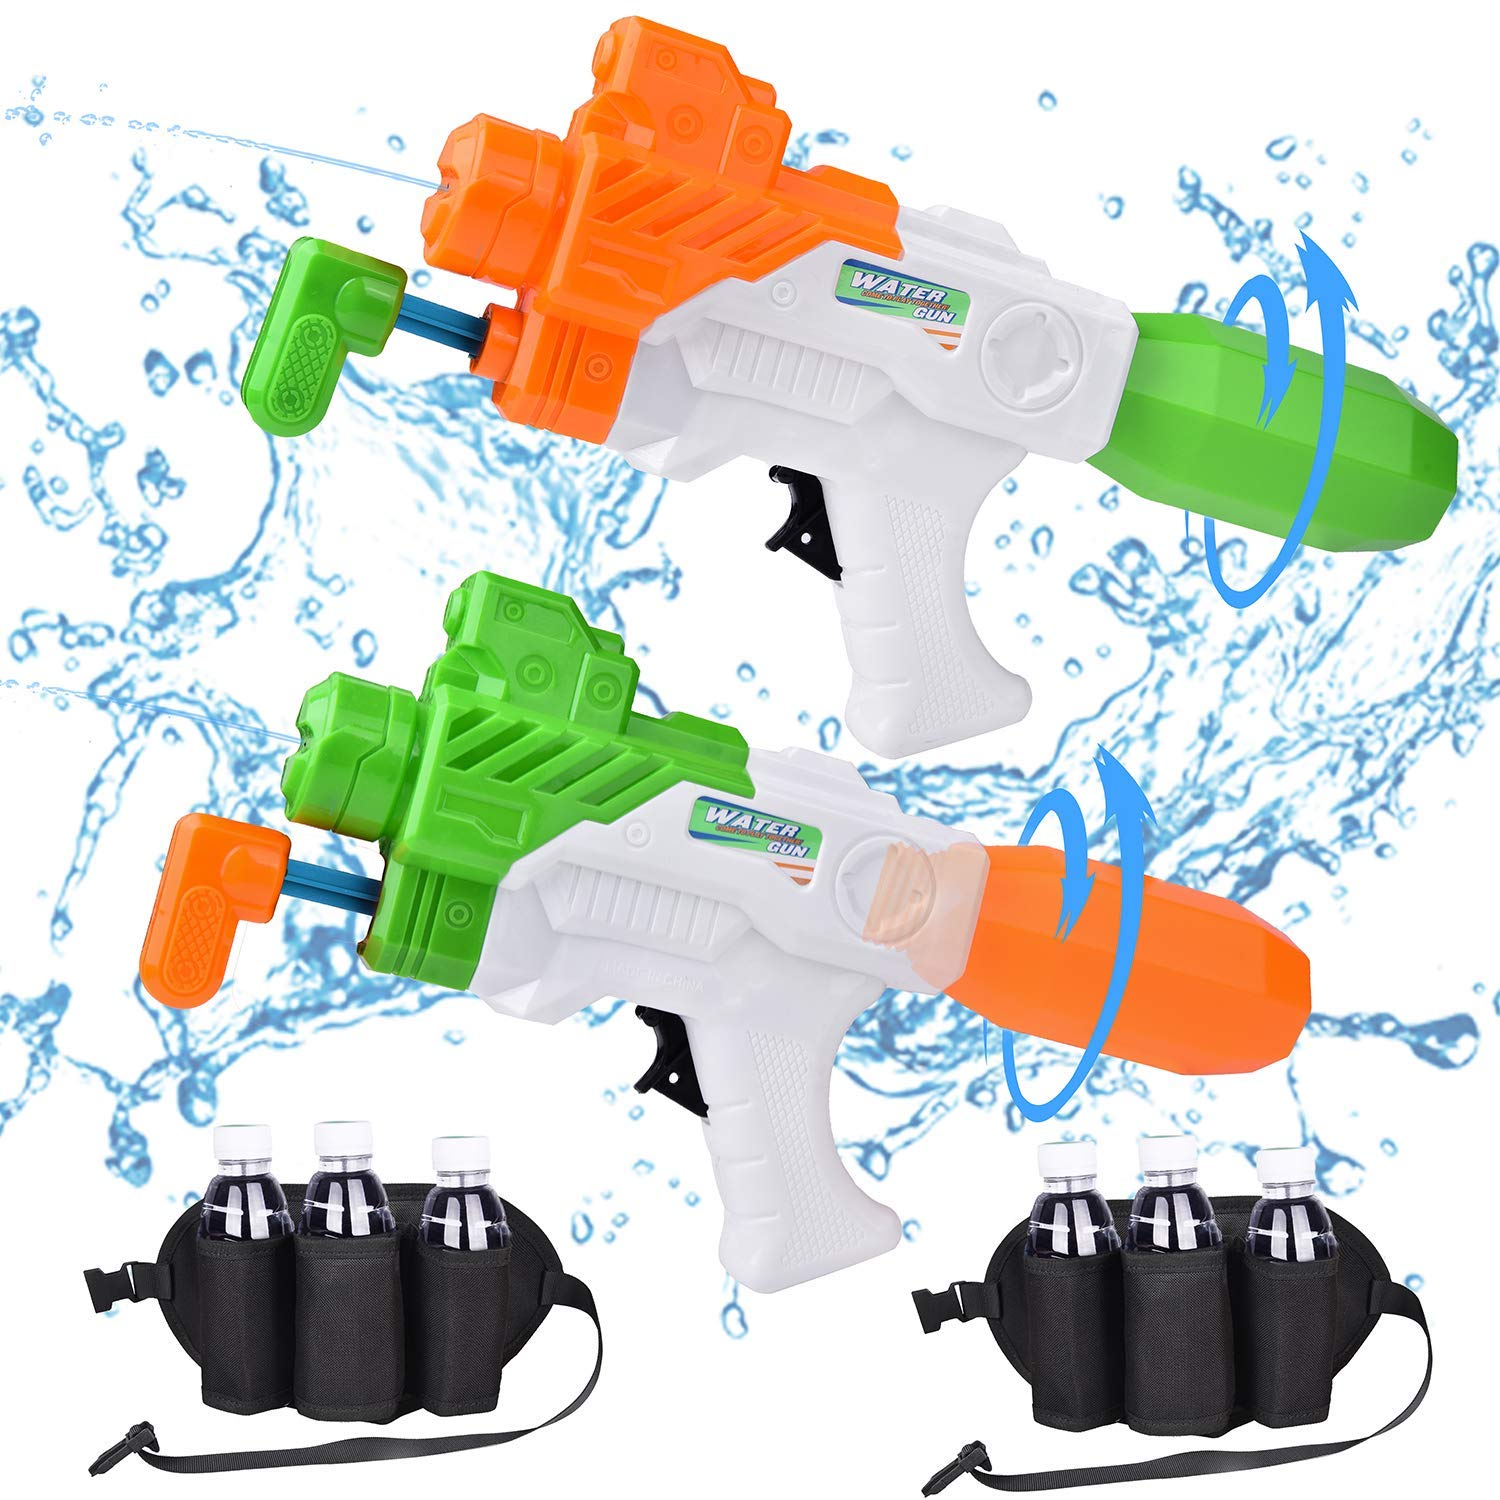 GEARBOSE 2 Pack Water Guns for Kids and 2 Waistbands, Squirt Guns Water Blaster Toys Pool Toys Outdoor Toys for Fight Games, Water Games, Outdoor Games and Party Favors by GEARBOSE